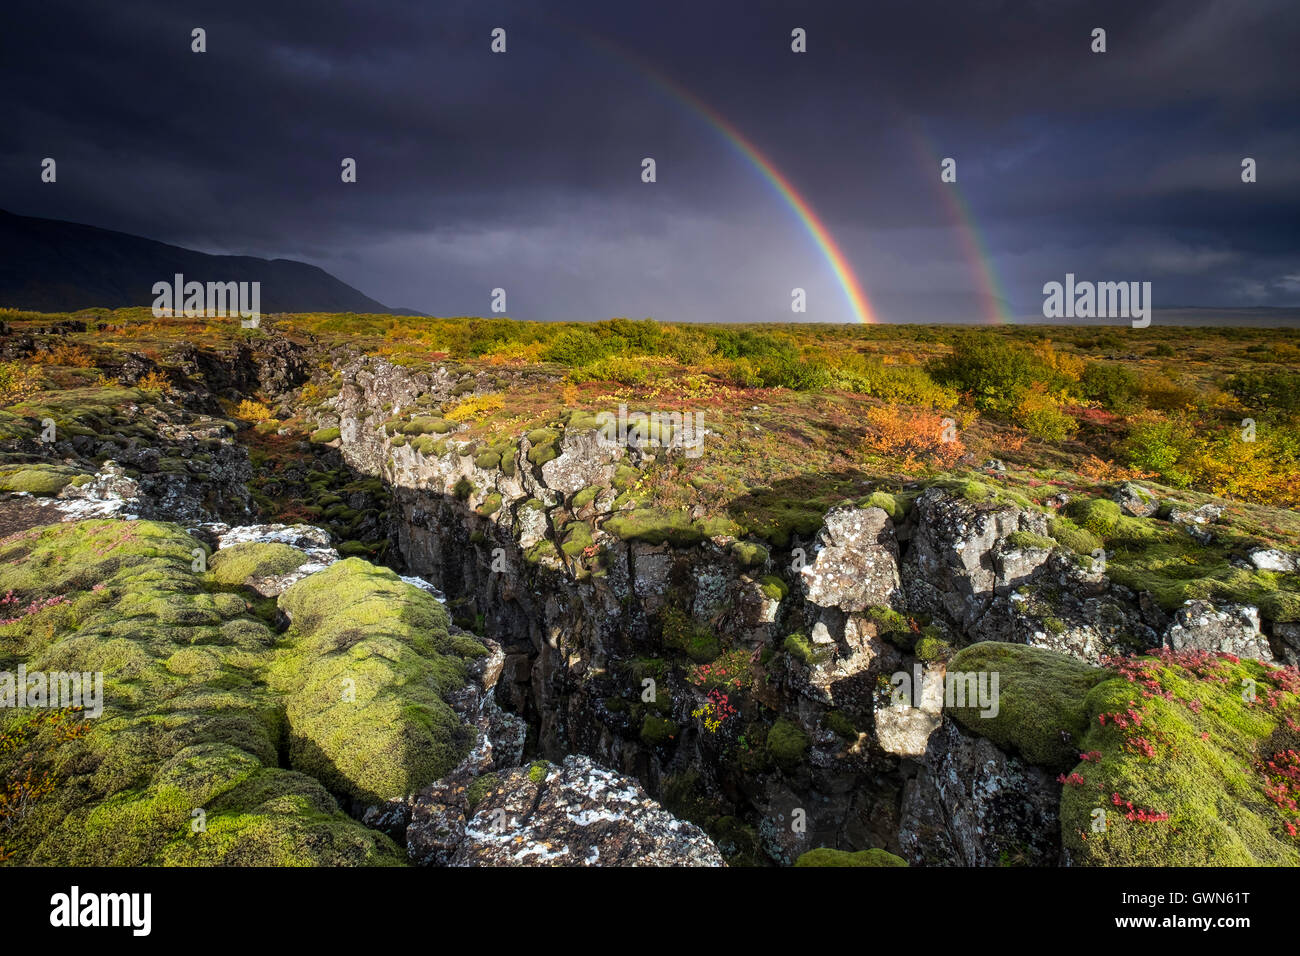 Rainbow and Rainstorm over Volcanic Landscape & Tectonic Plate Fissure, Thingvellir National Park, South Western - Stock Image